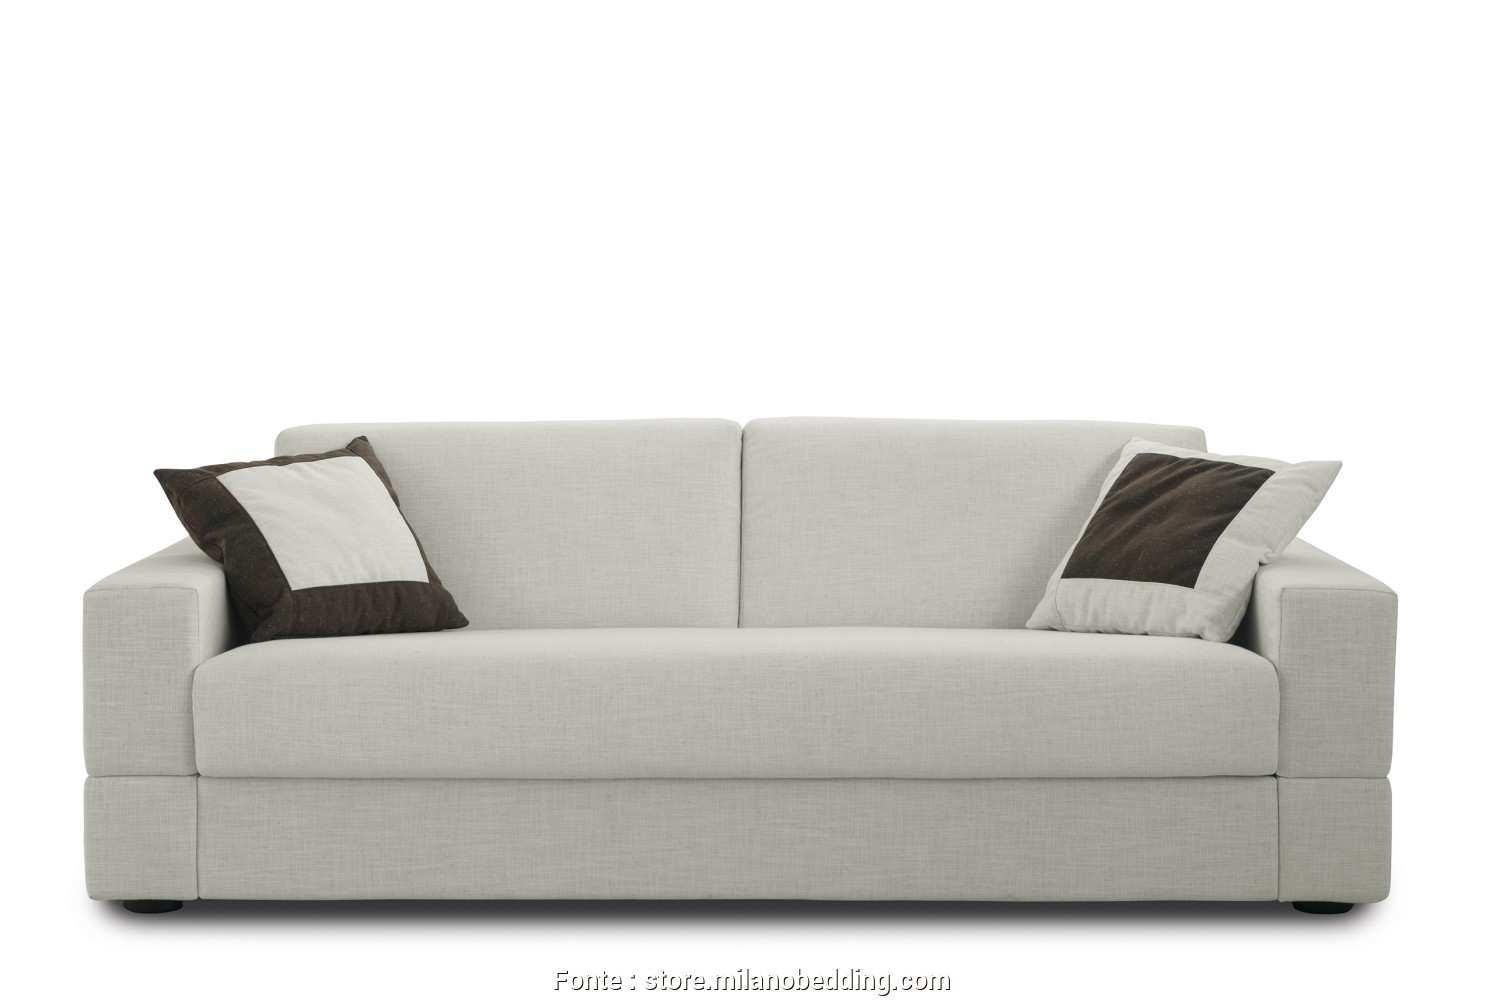 Divano 3 Seater Sofa, Eccezionale Brian Is, Or 3-Seater Sofa, With Sprung Mattress, Compact